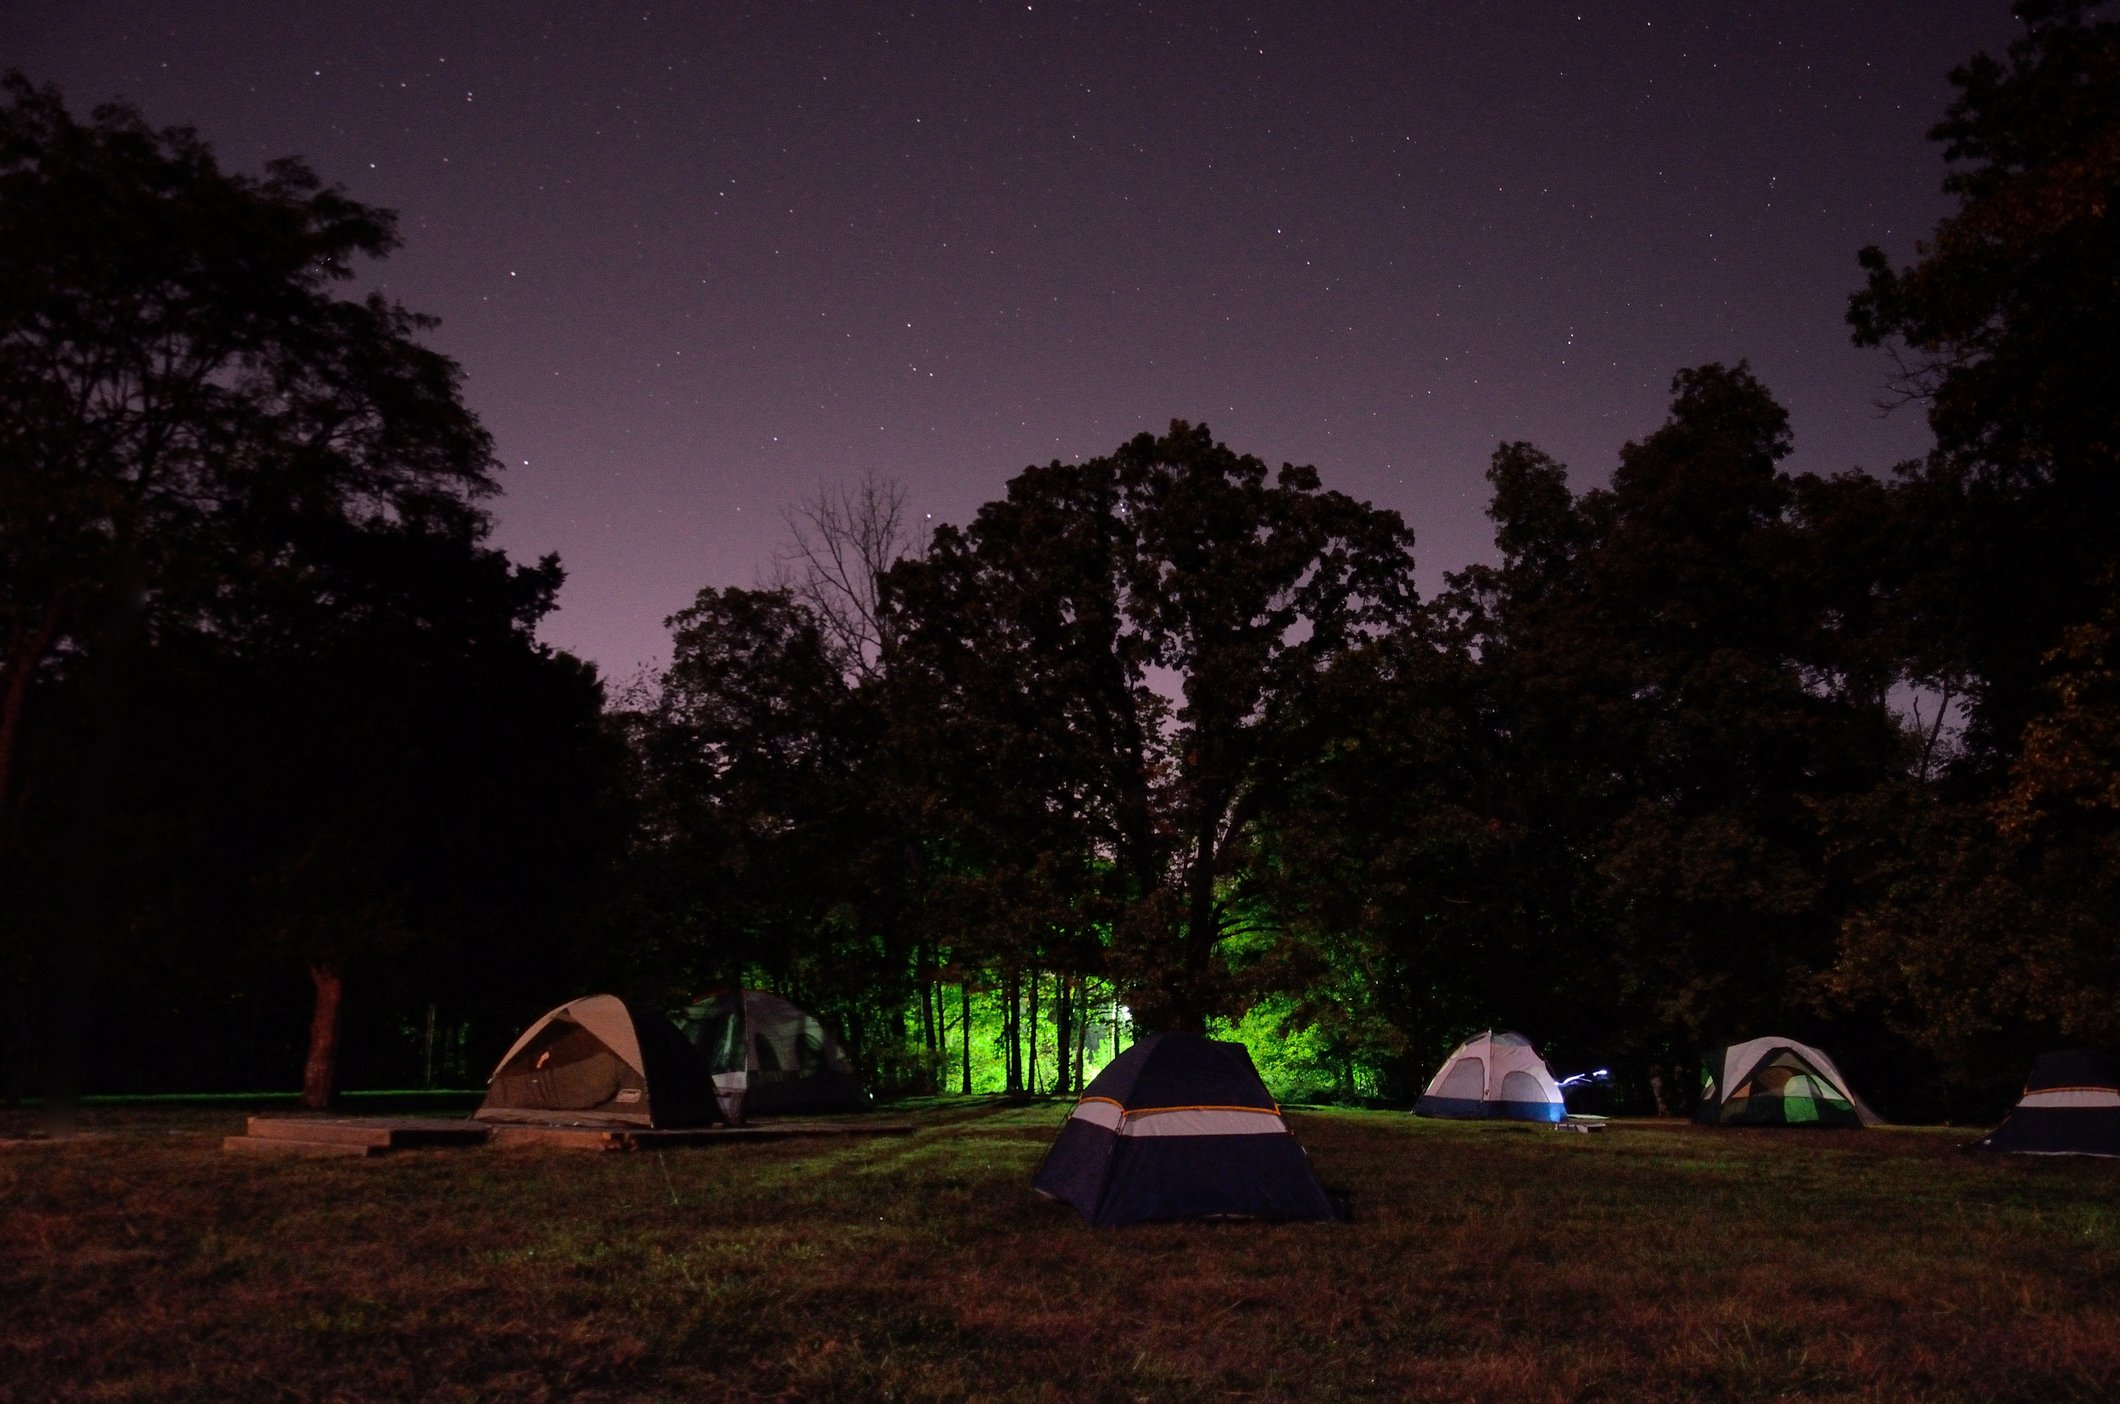 Tents and a glow straight from Stephen King's 'The Tommy Knockers'